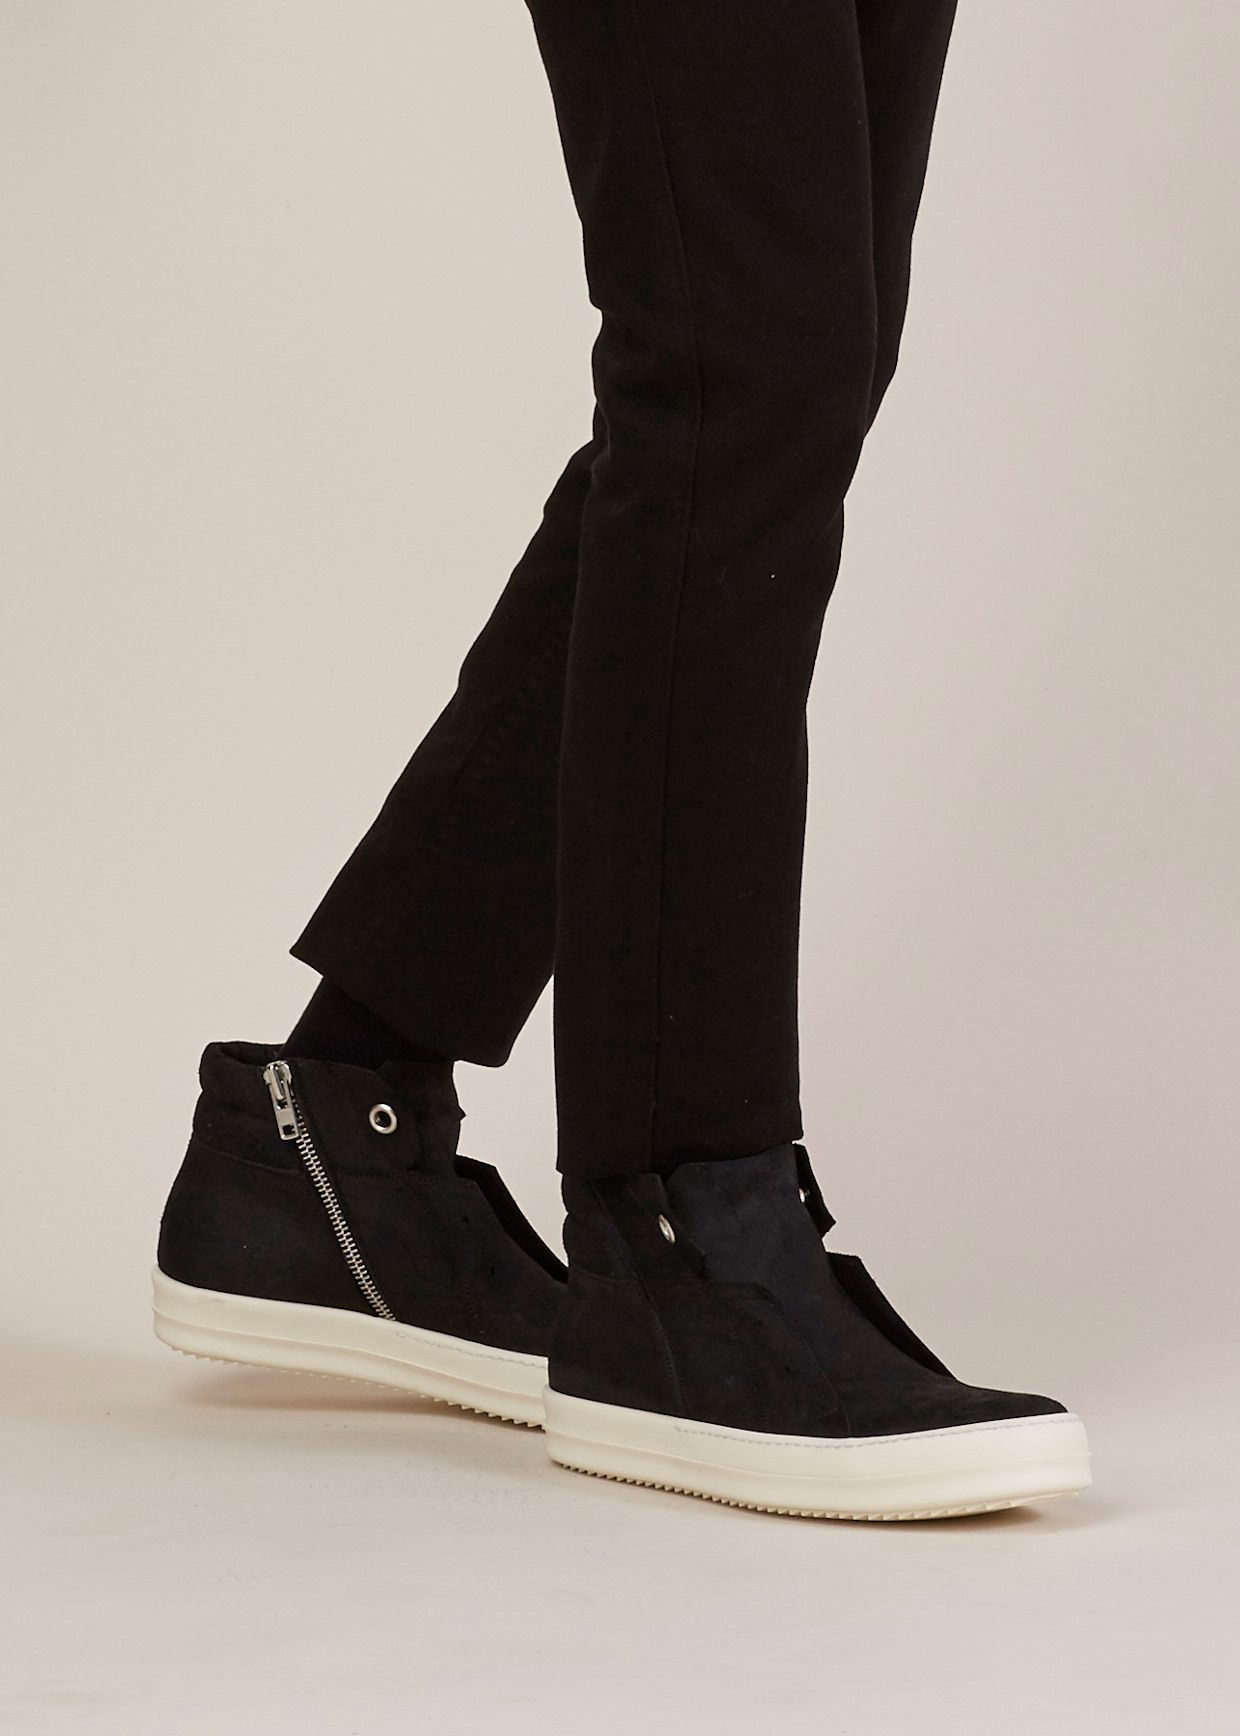 Black Island Dunk High-Top Sneakers Rick Owens